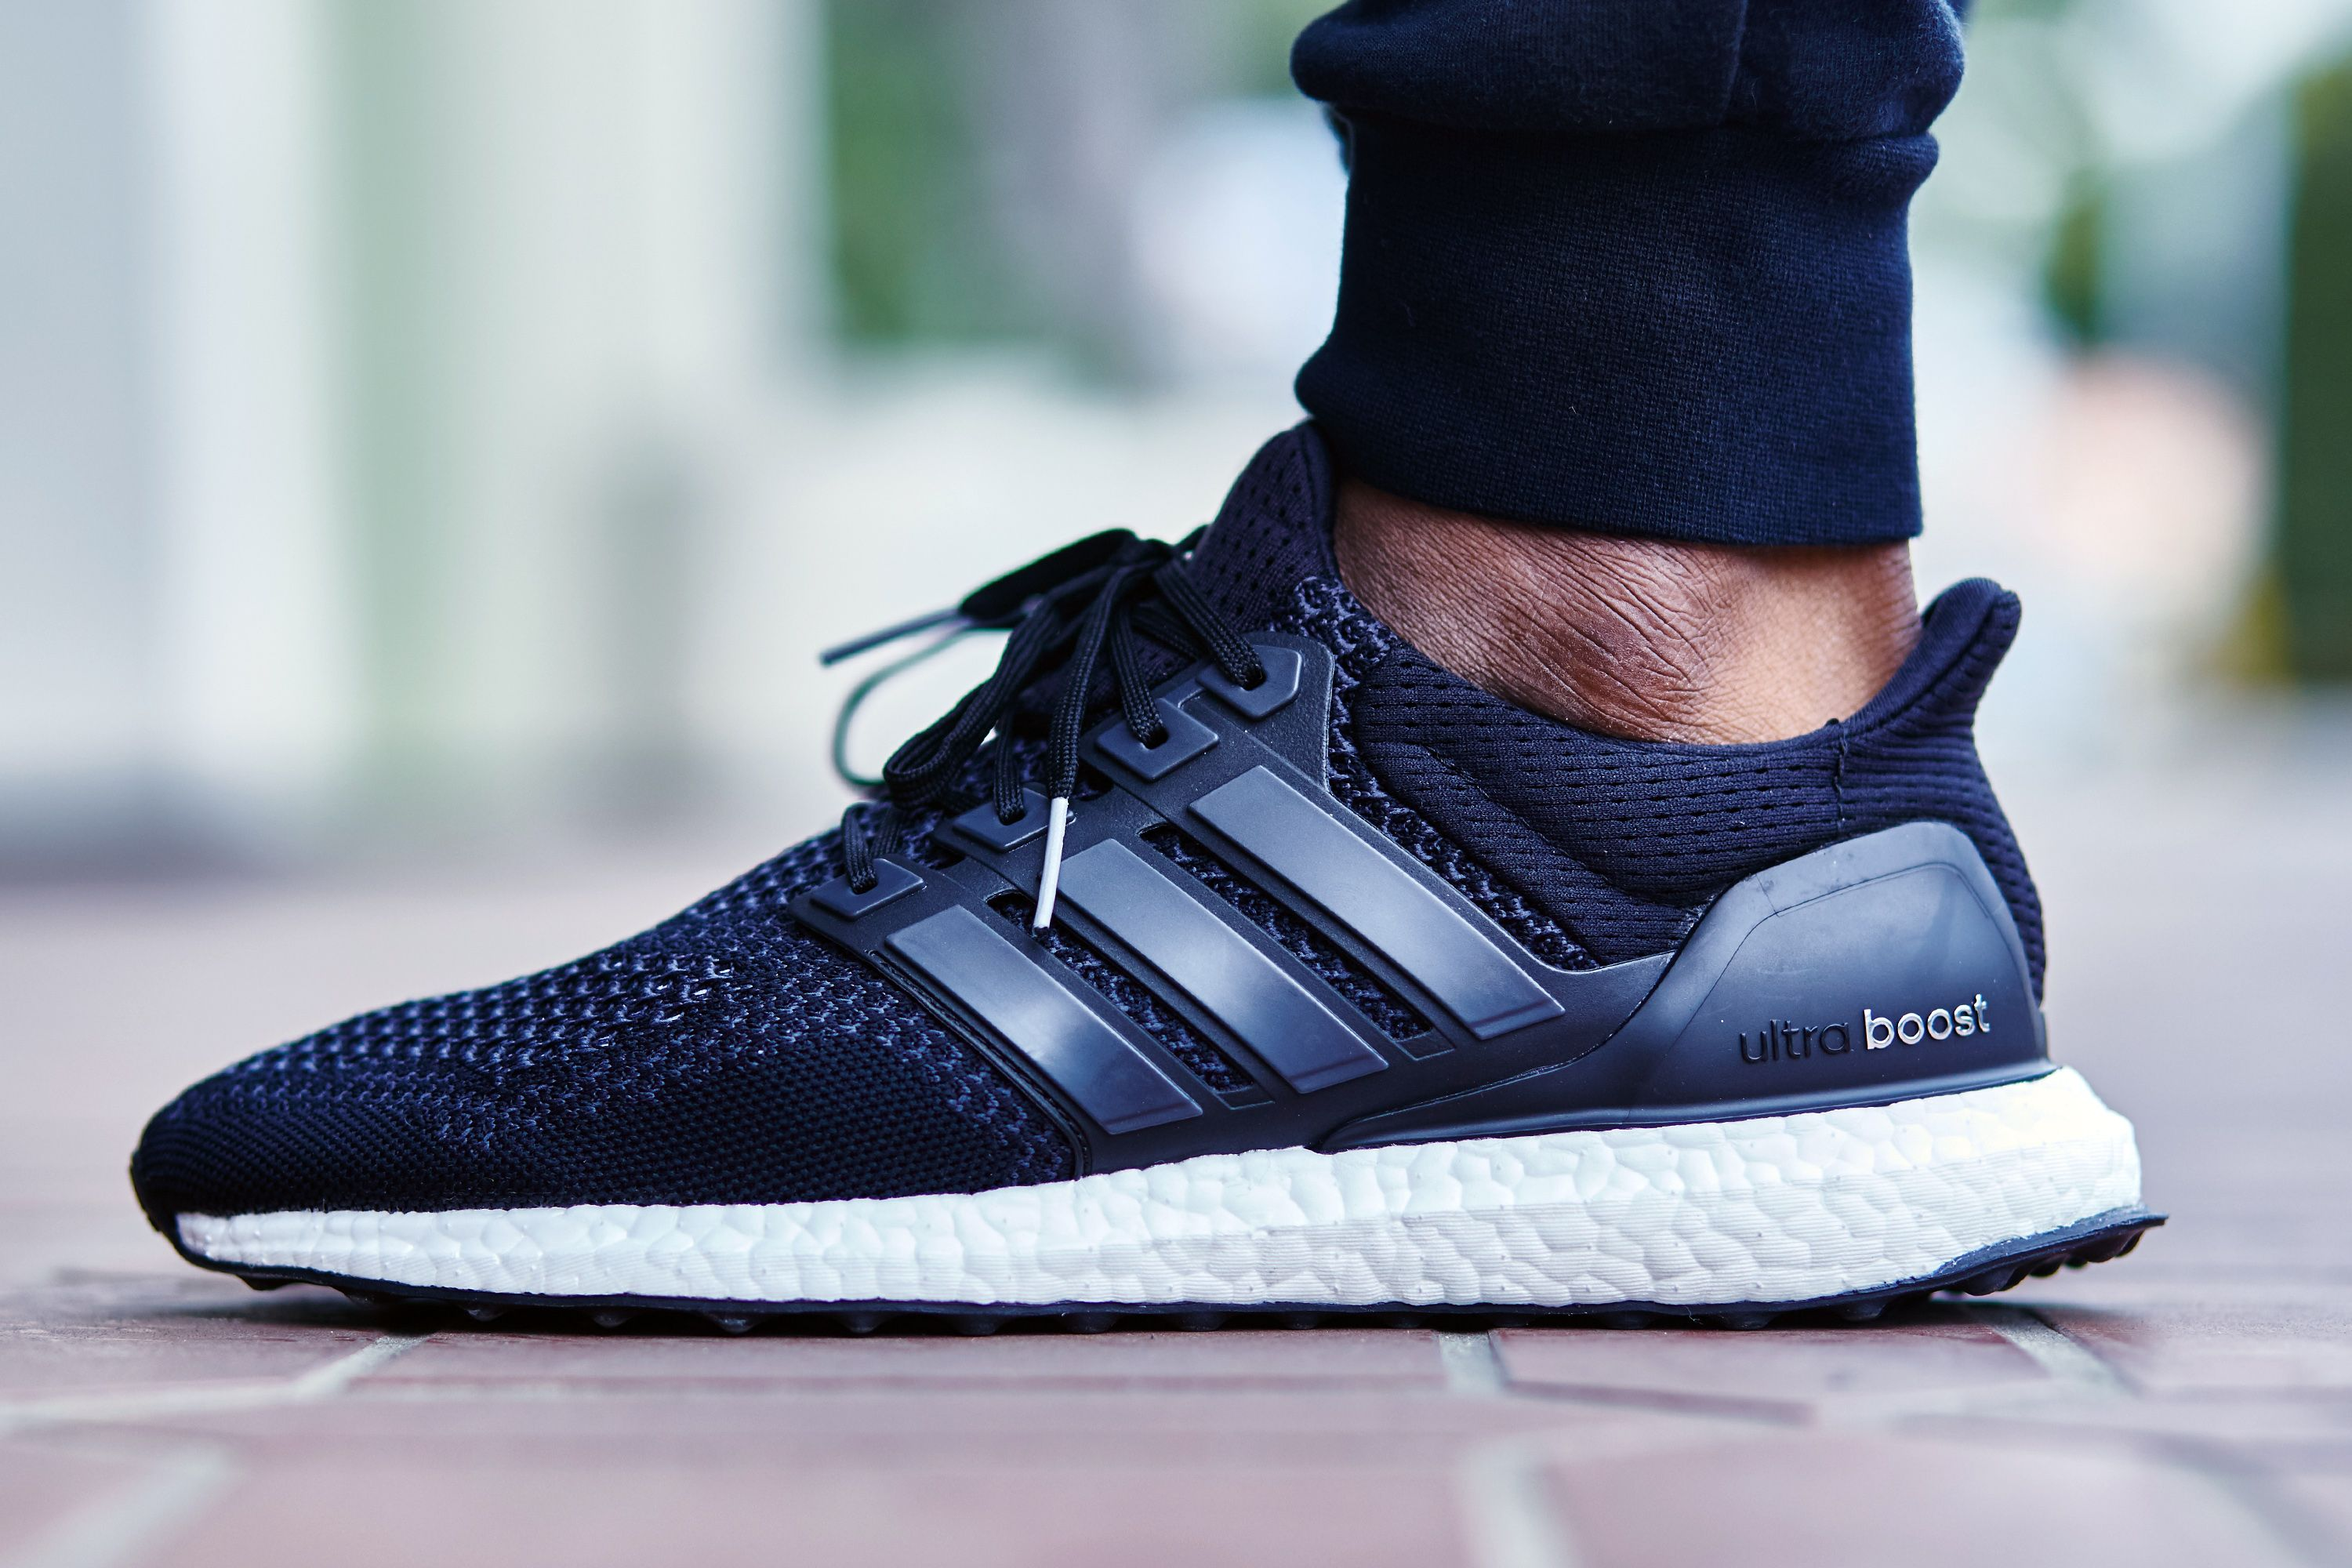 8c8dba0b2f3d6 adidas Ultra Boost On-Foot Look